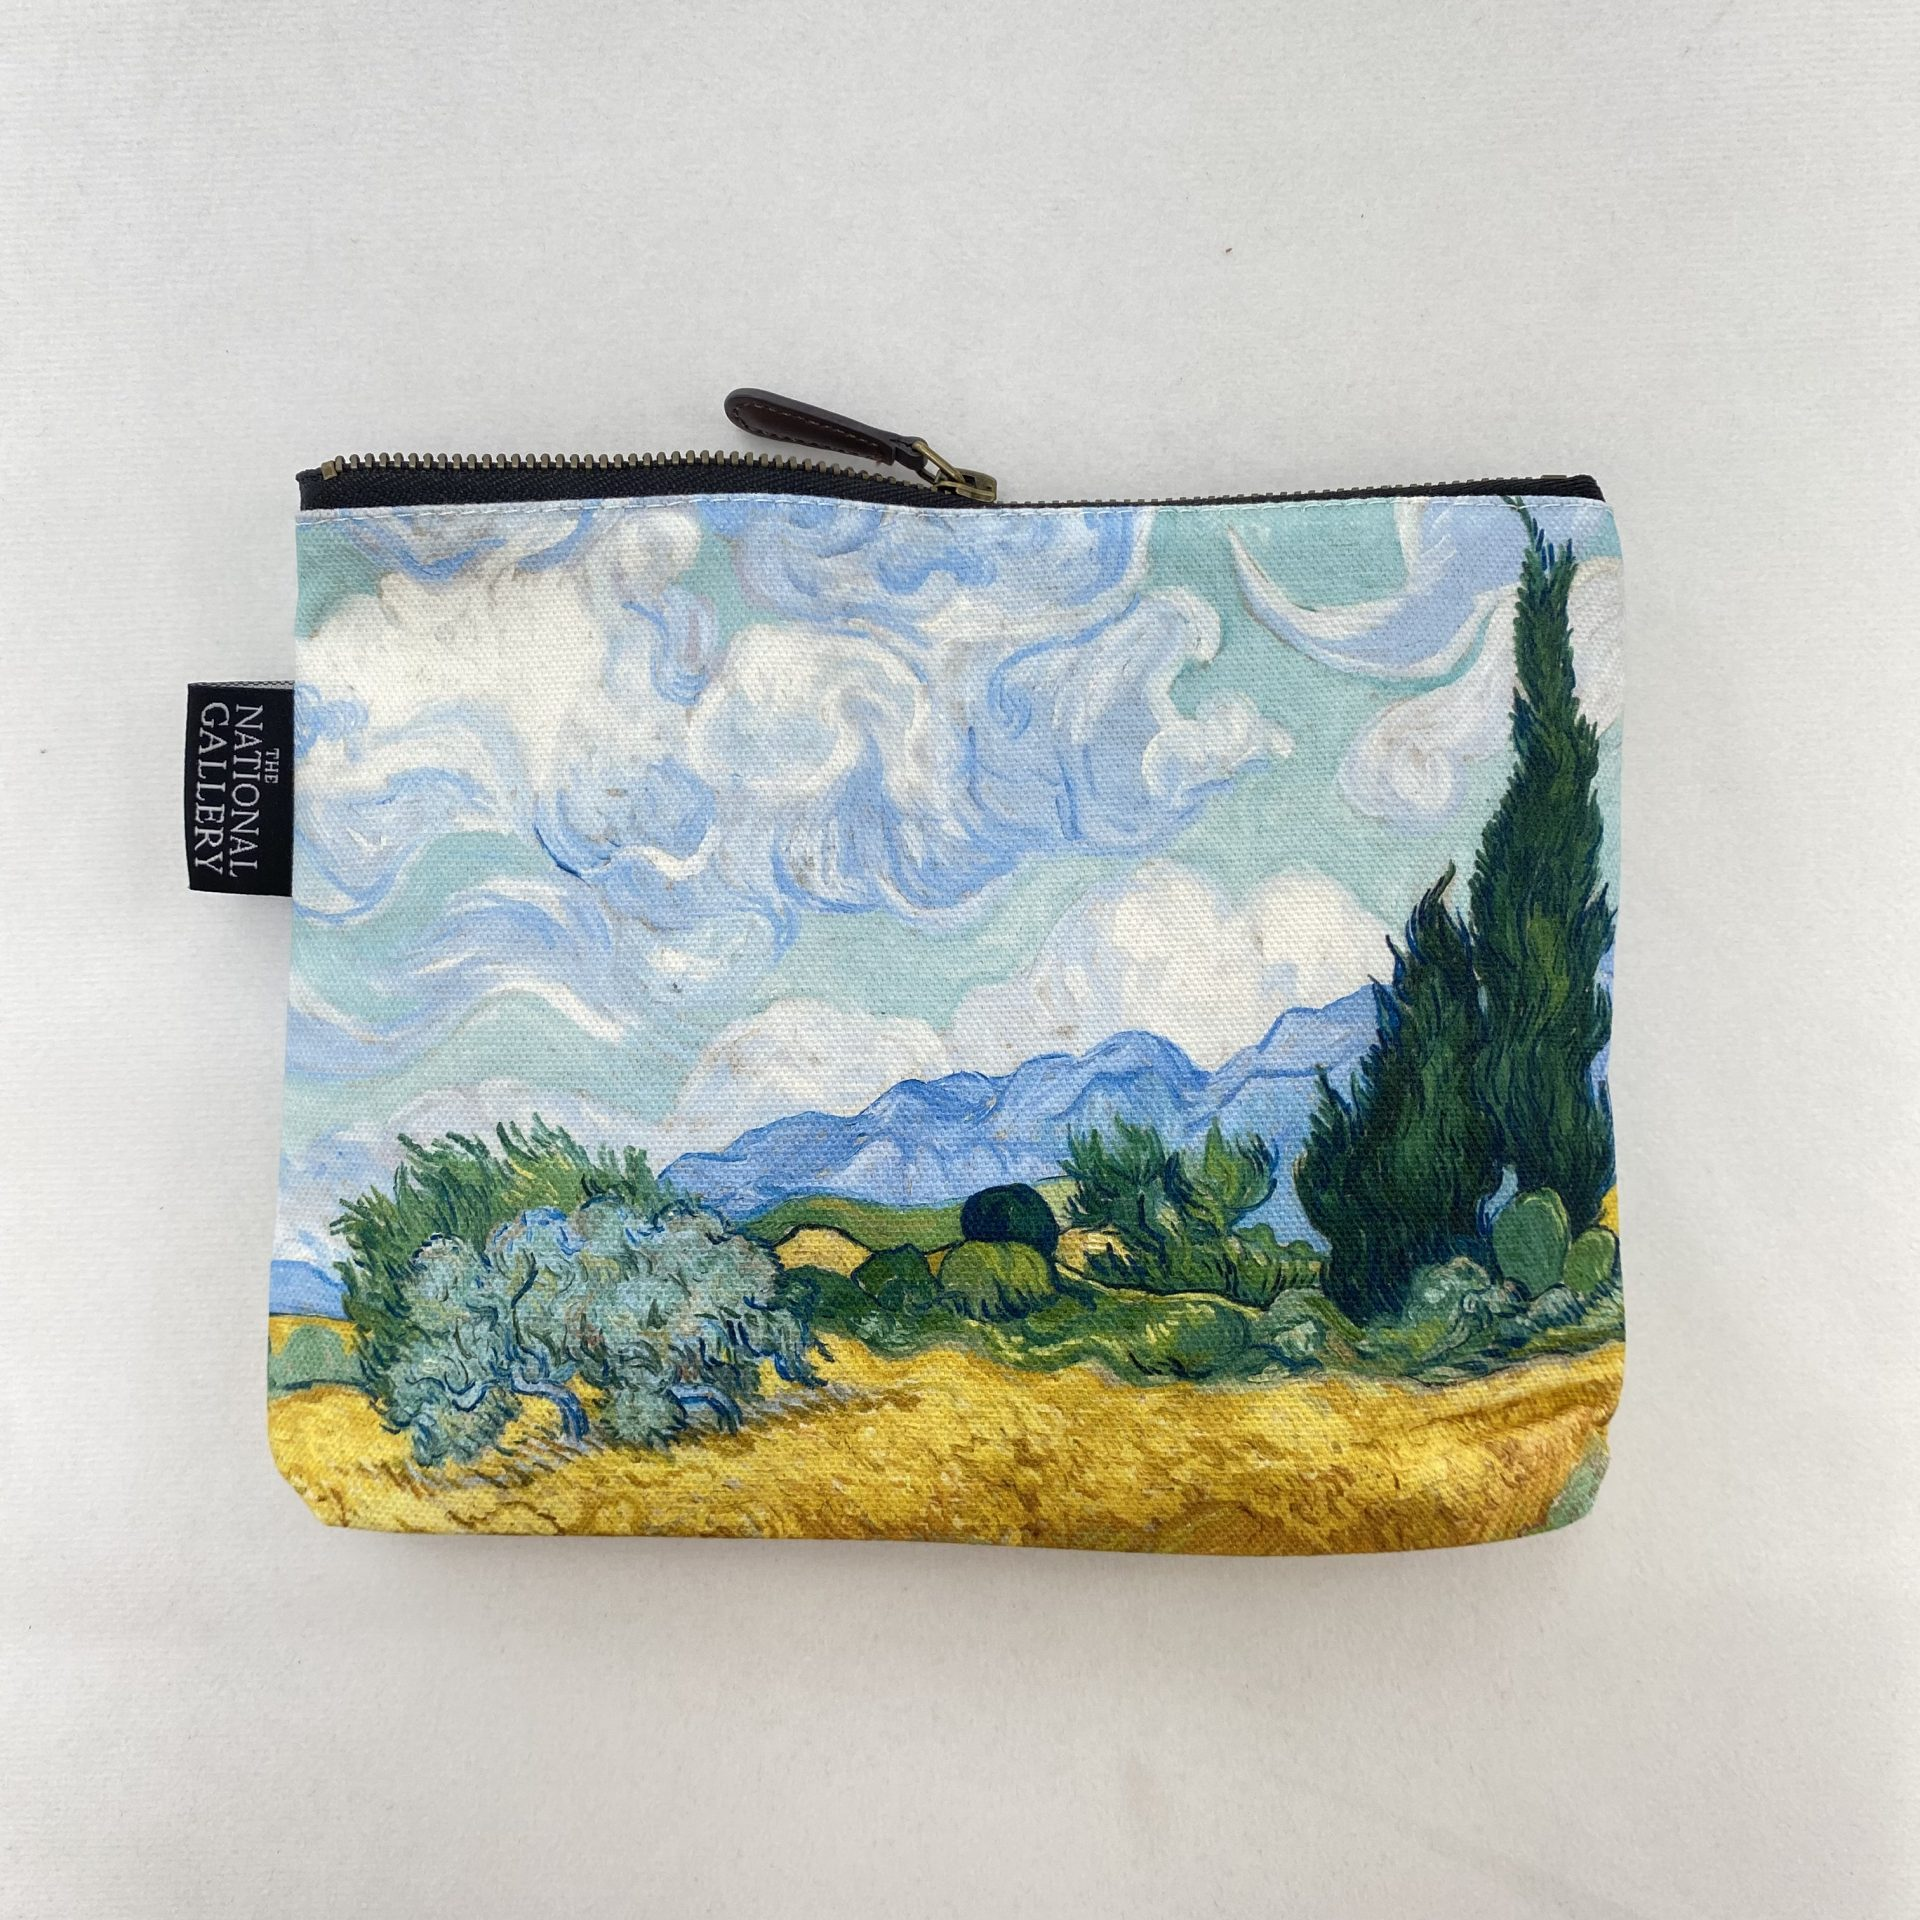 National Gallery promotional purse